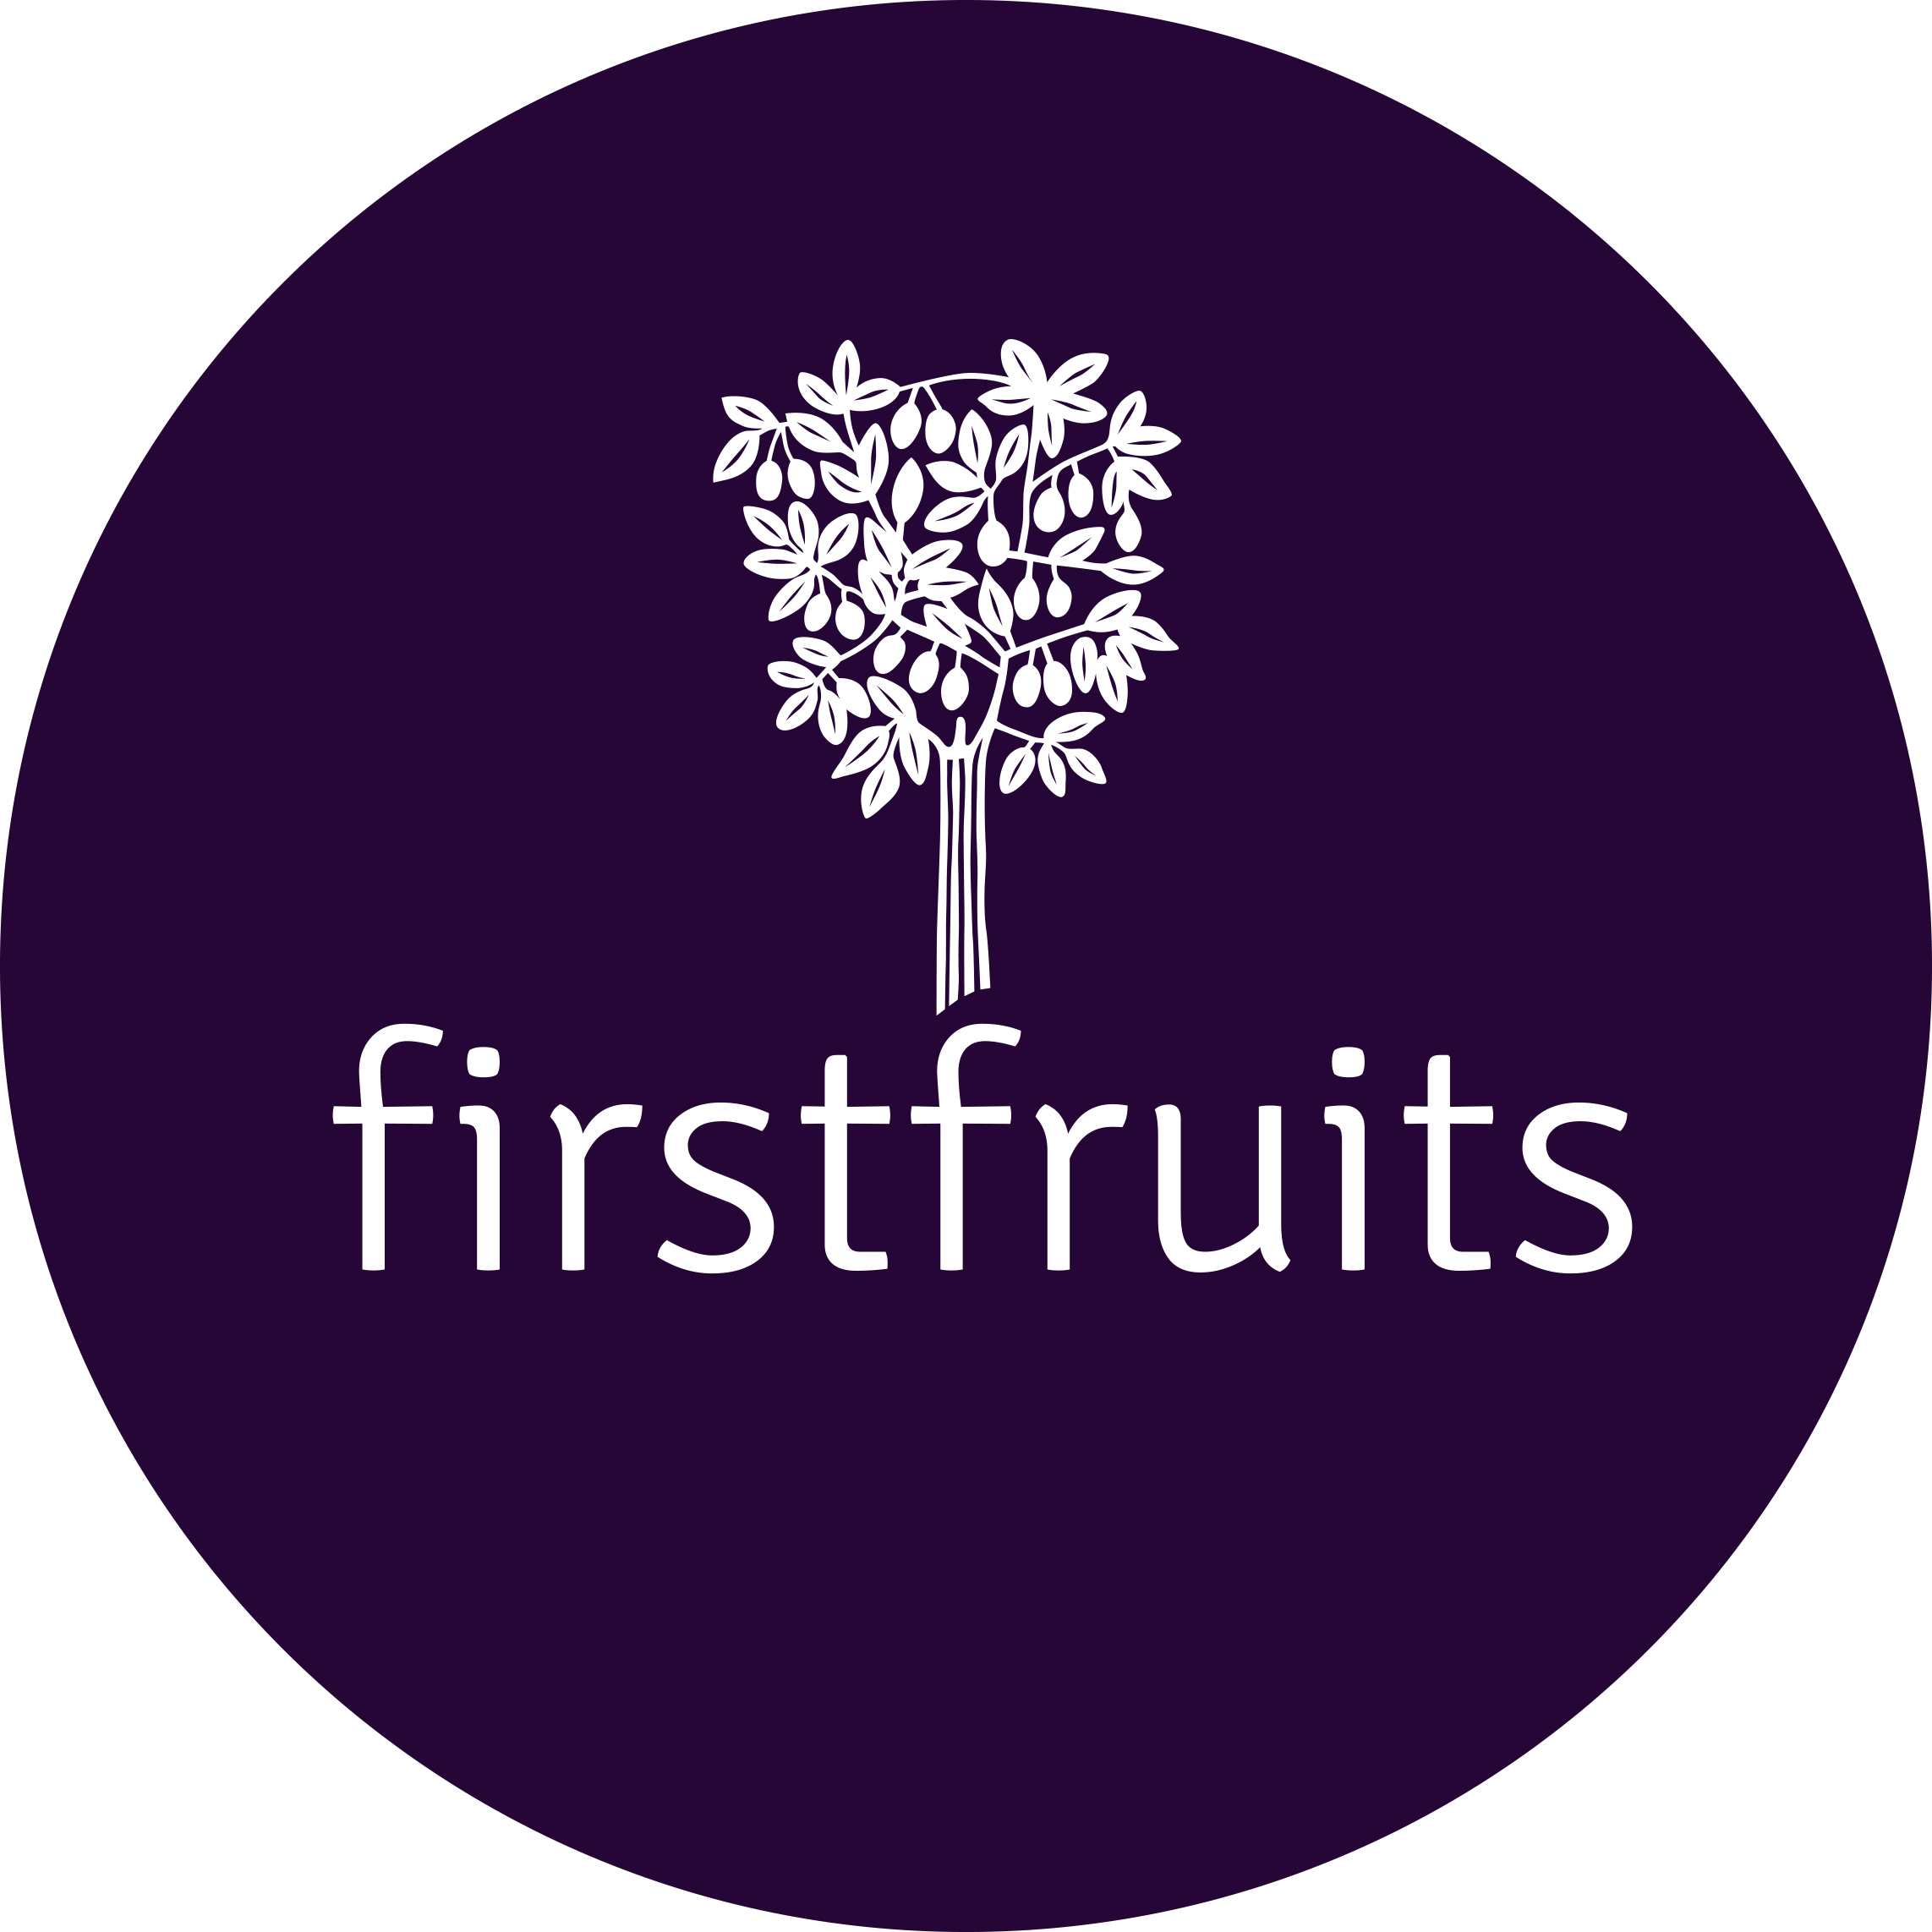 firstfruits.png